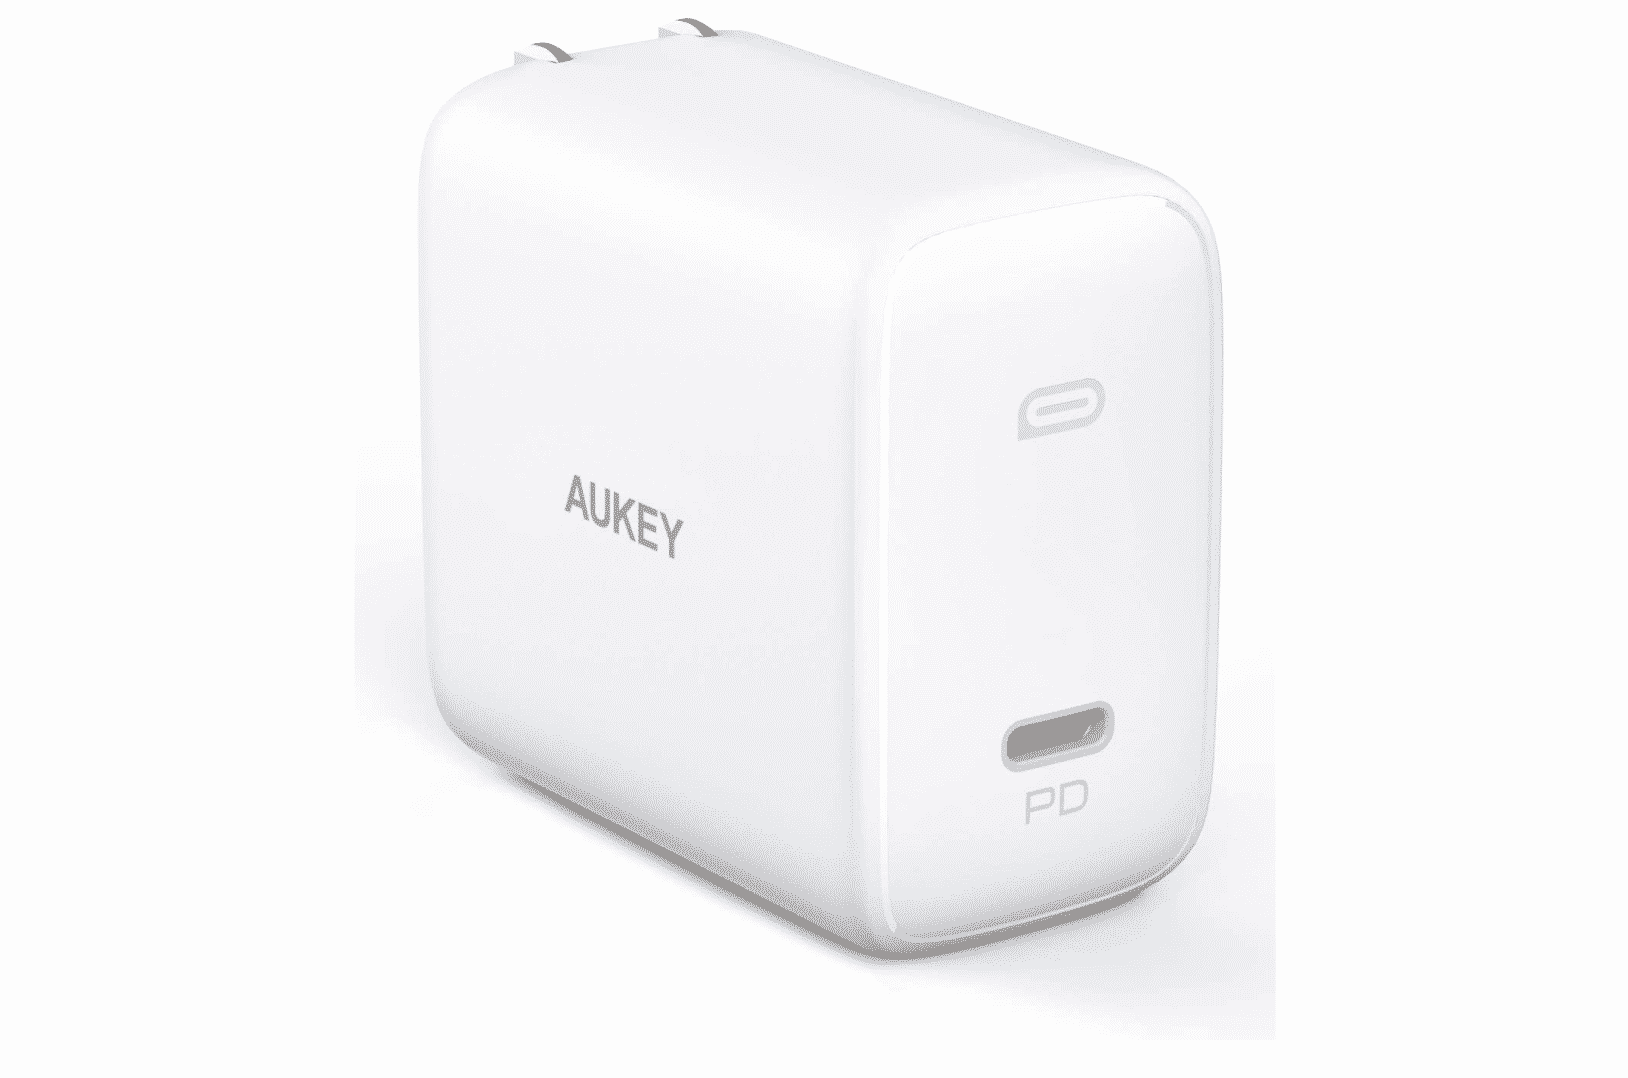 AUKEY's 100W MacBook Pro USB C Charger